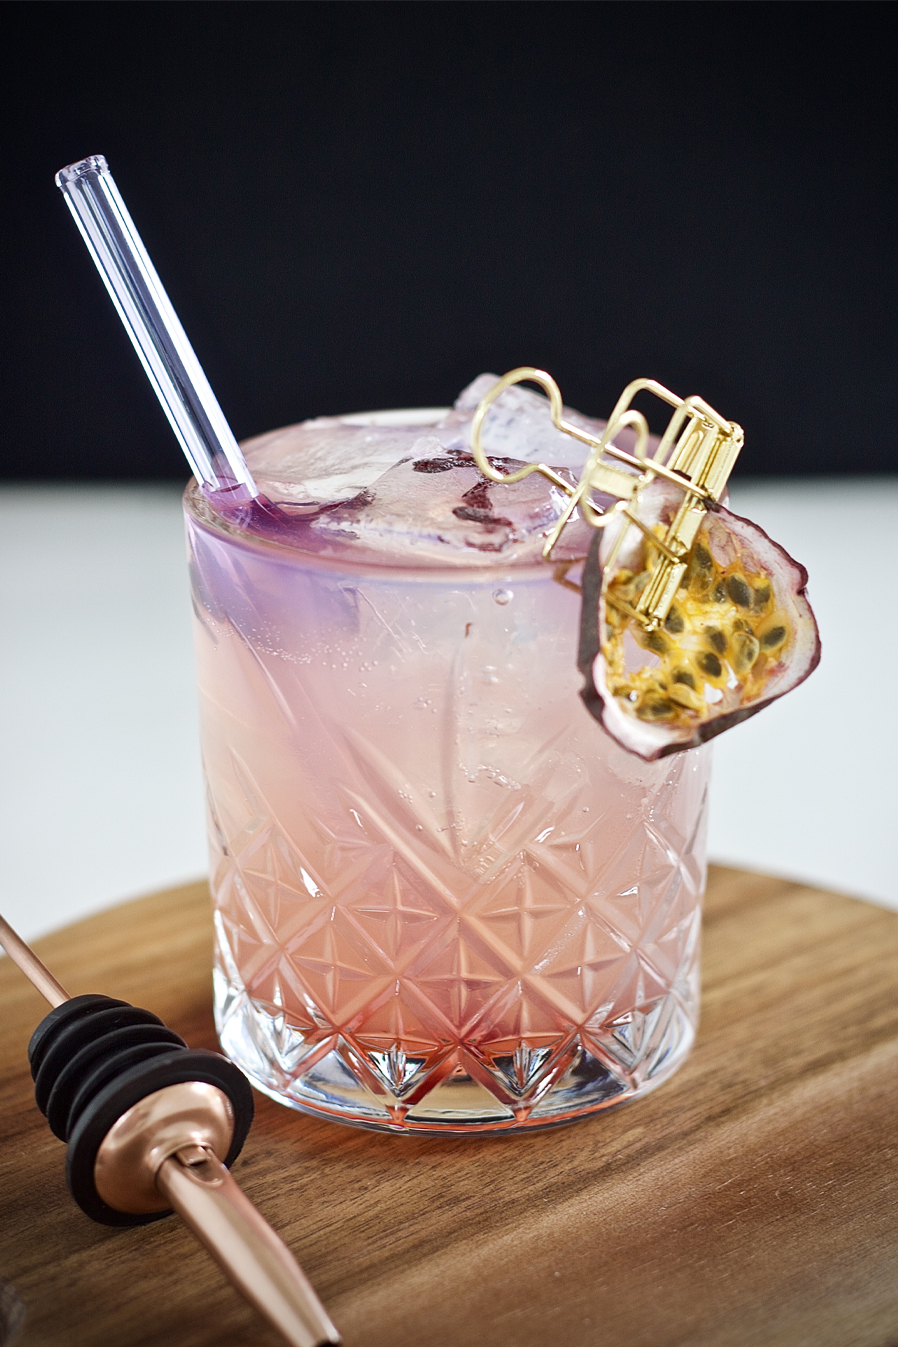 Passionate Elixir - Summer inspired cocktail. Way to change things up!6cl Illusionist Dry Gin1.5cl Freshly squeezed lemon juice1.5cl Raspberry & Rose Syrup2 Dashes Lavender BittersTop with Peach Tonic WaterGarnish - Rose petal infused ice and a dehydrated passion fruit slice